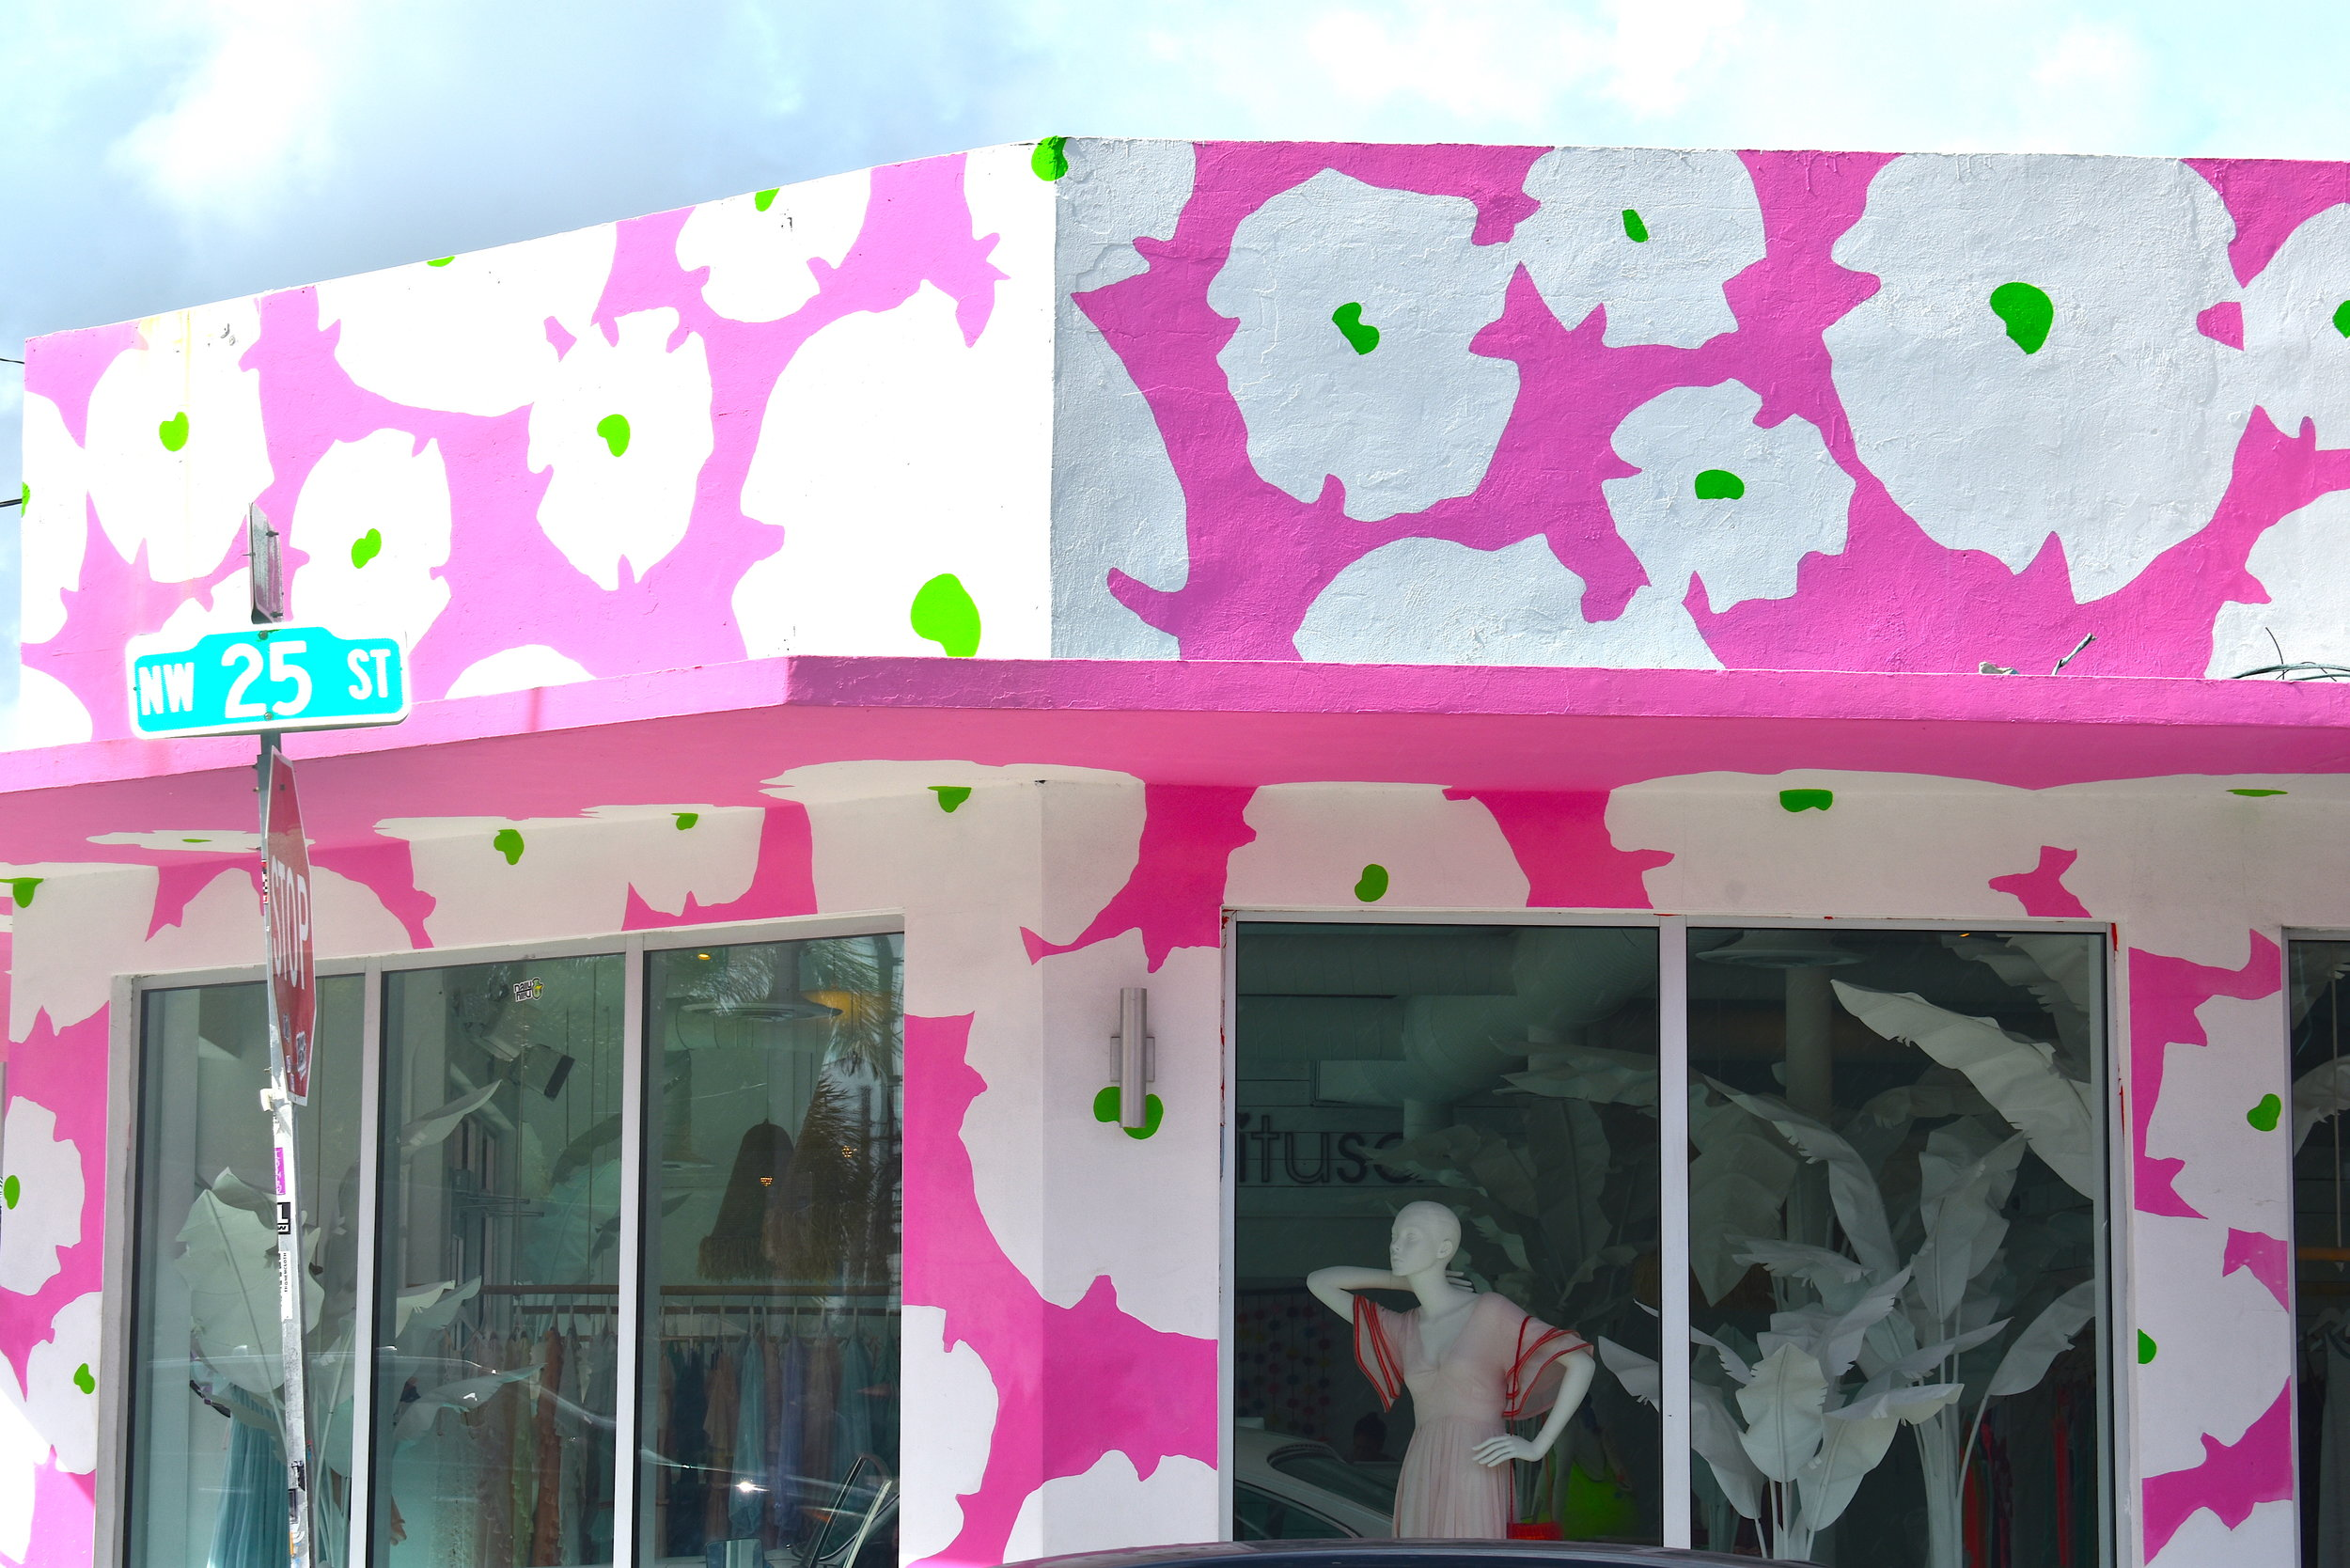 Every shop in Wynwood is covered with colorful designs.